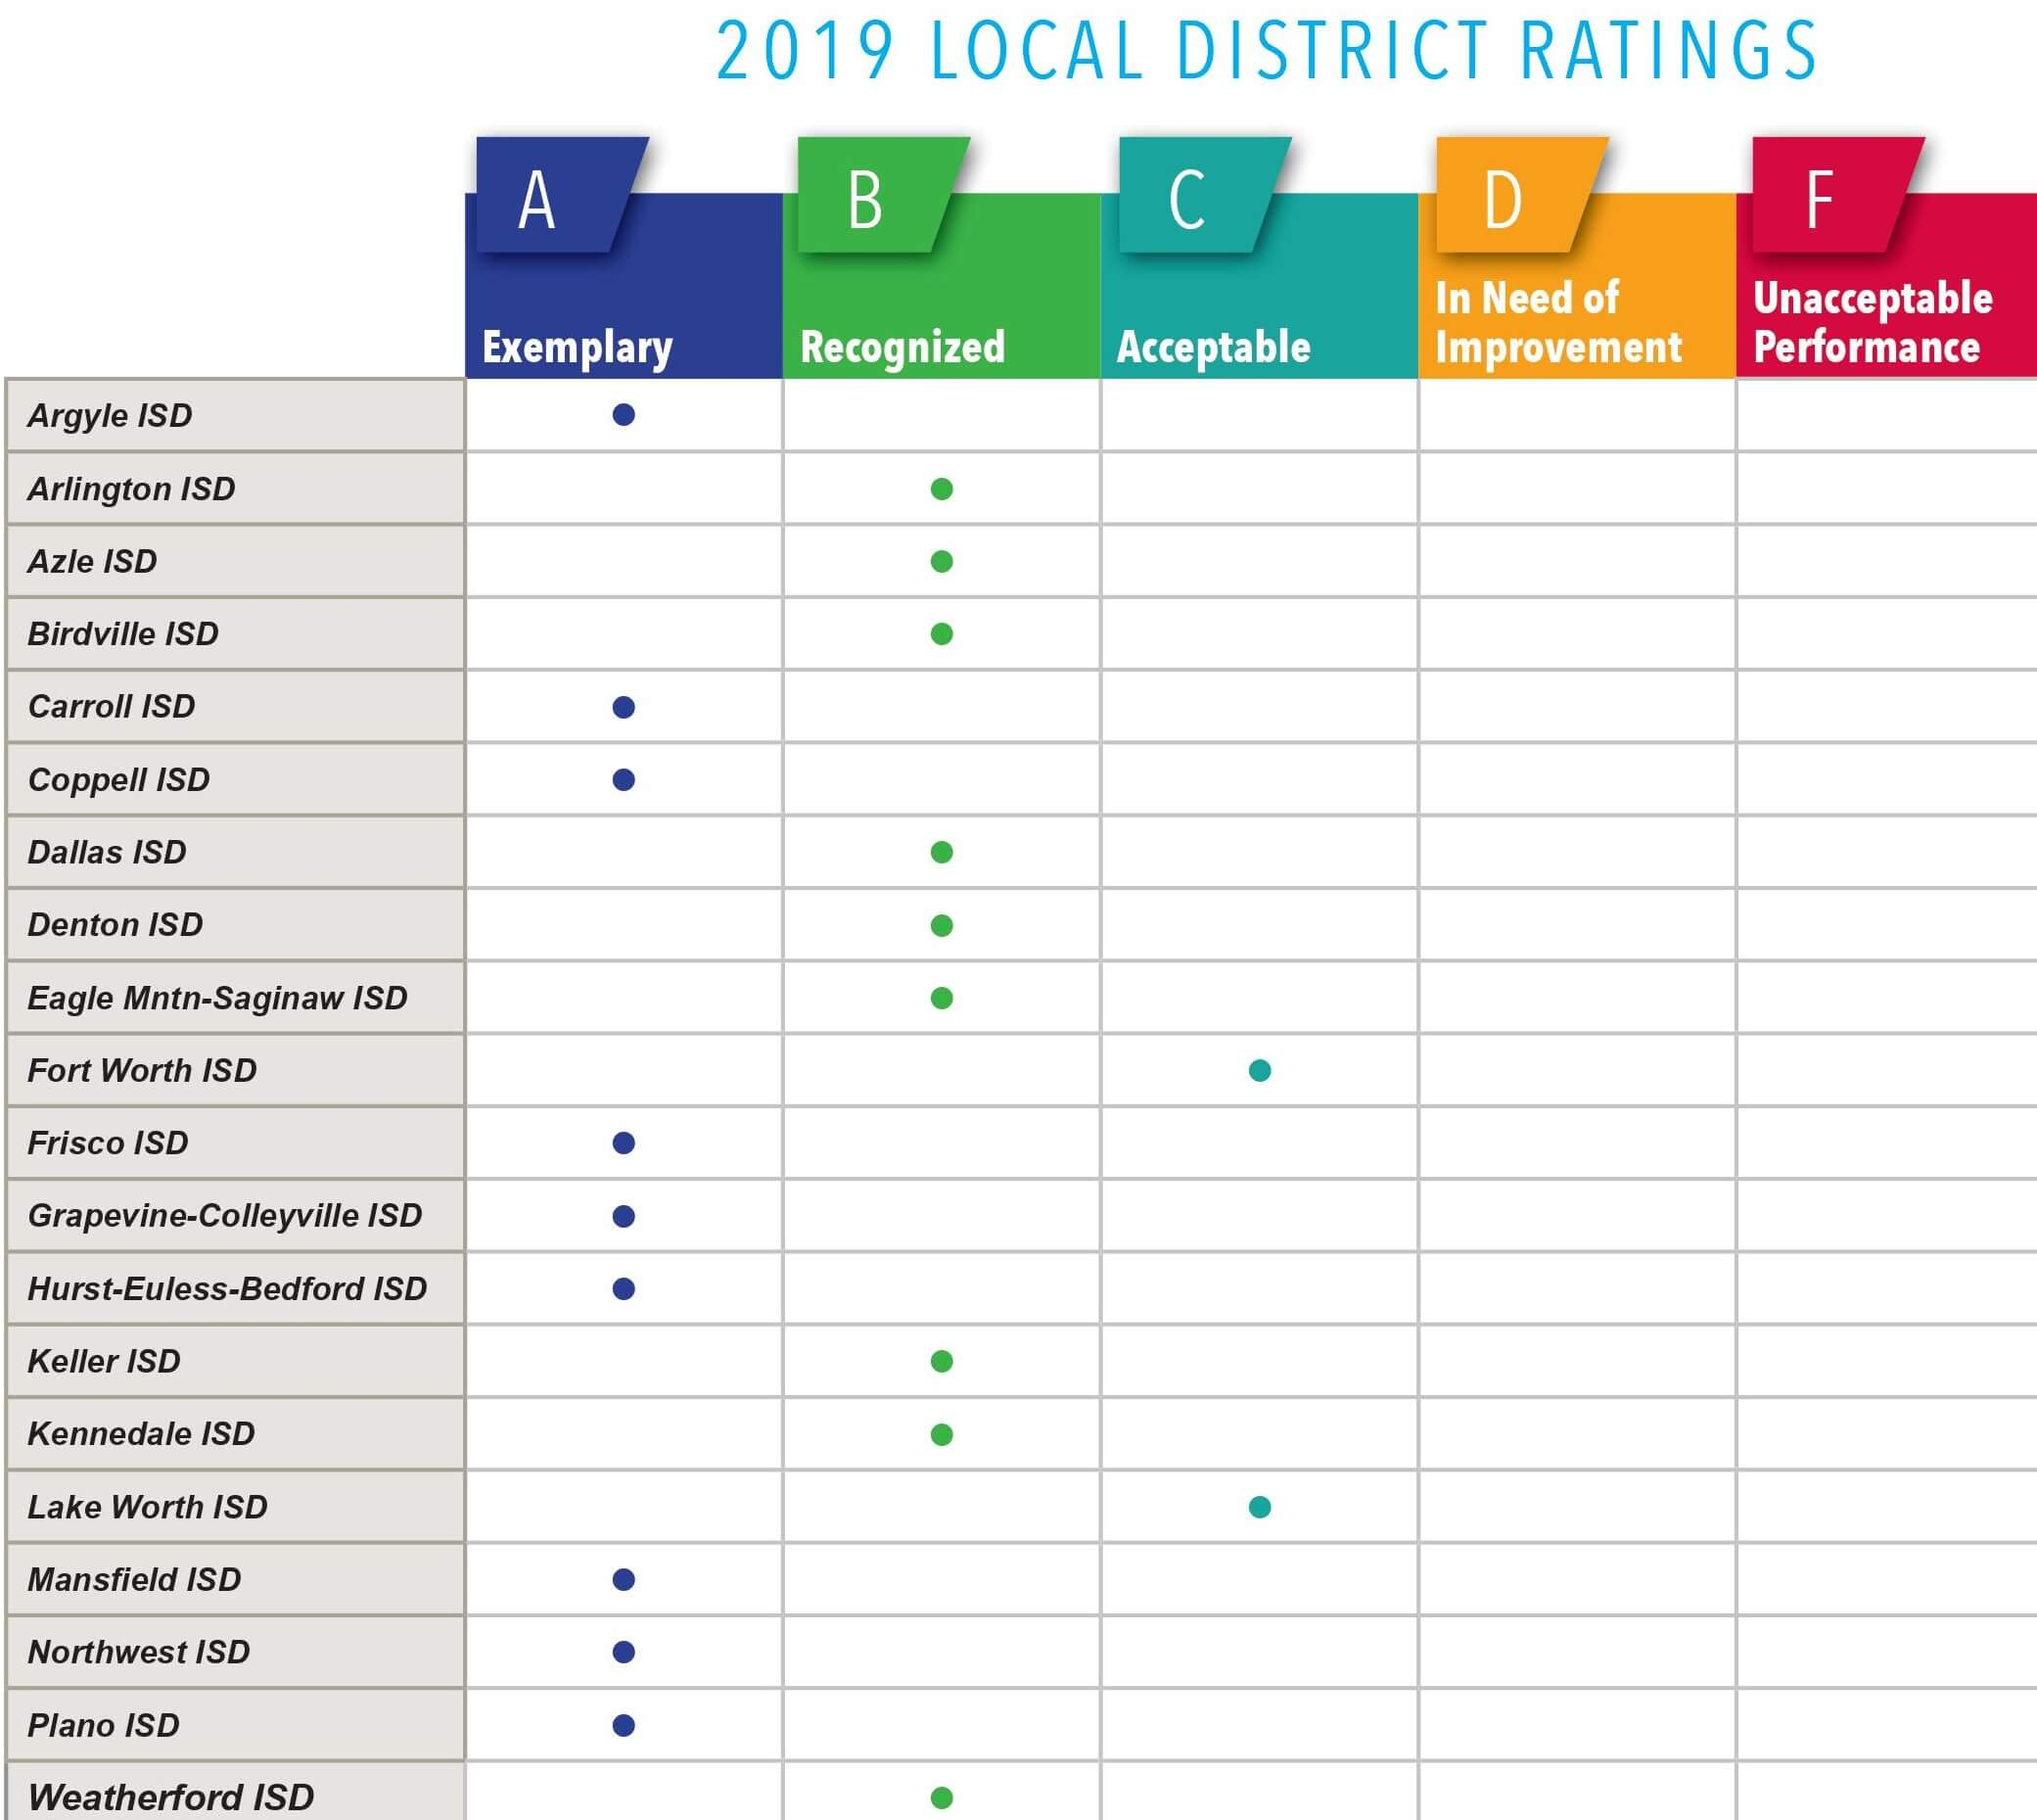 Local School District Ratings 2019